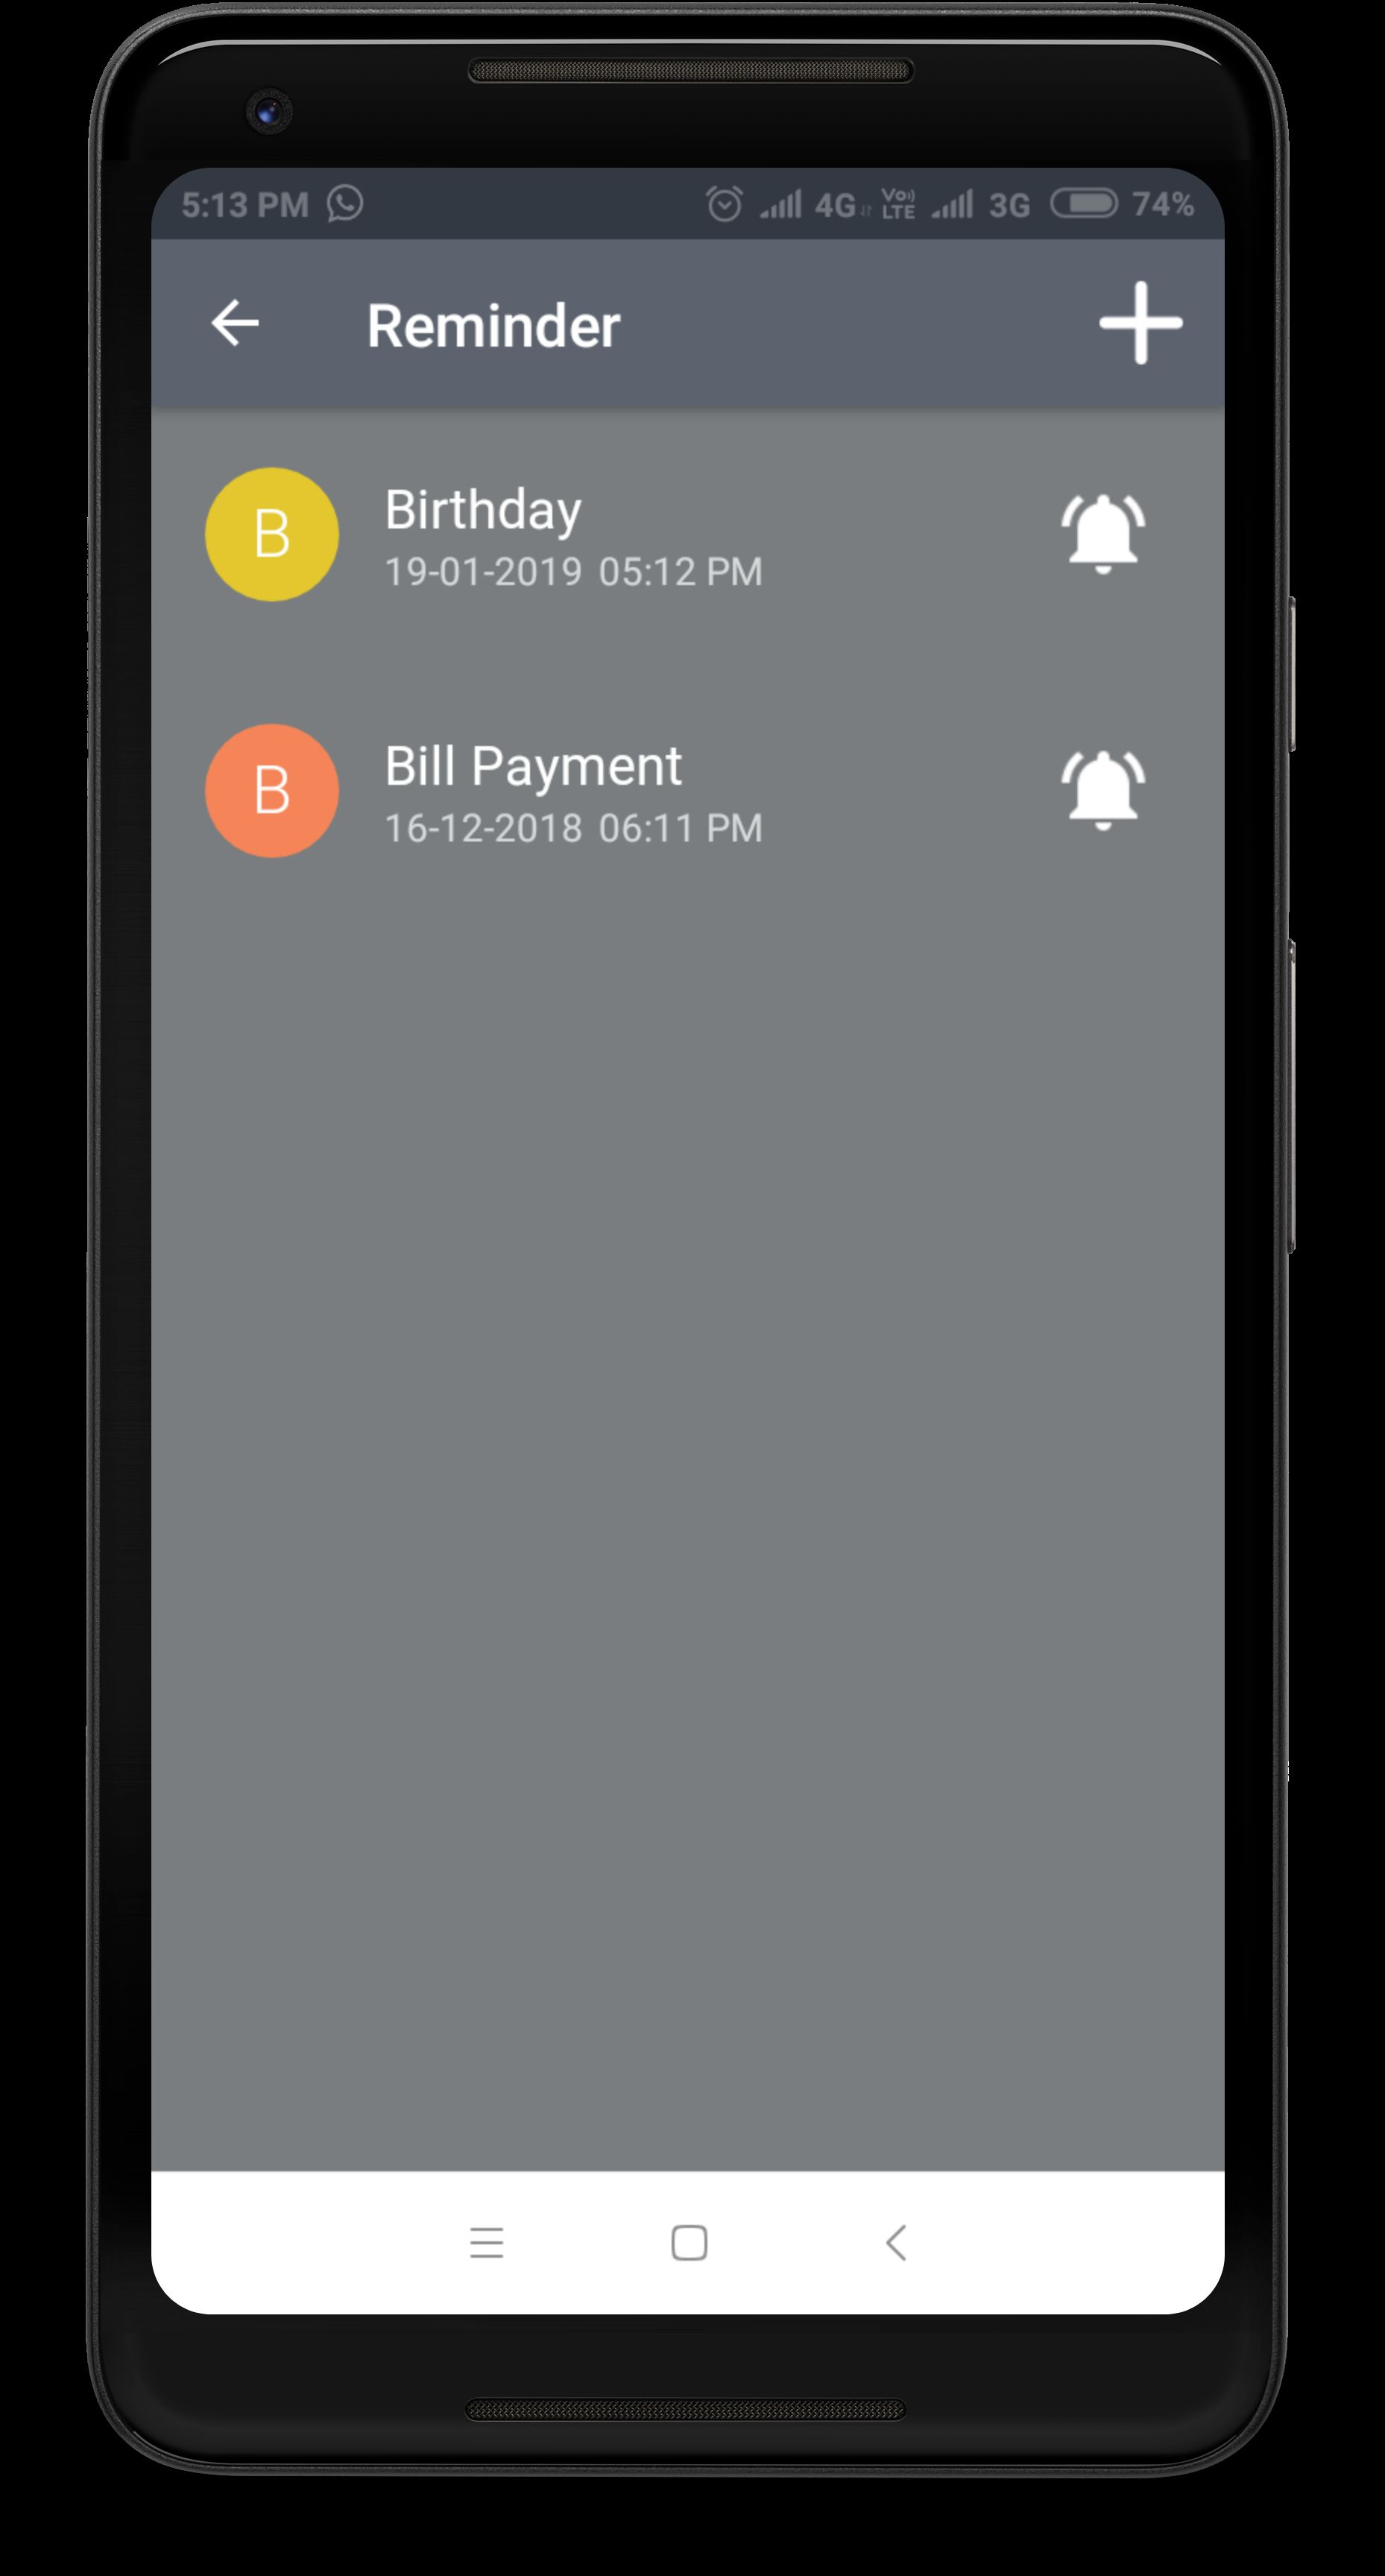 Daily Expense Manager - Android Source Code Screenshot 15